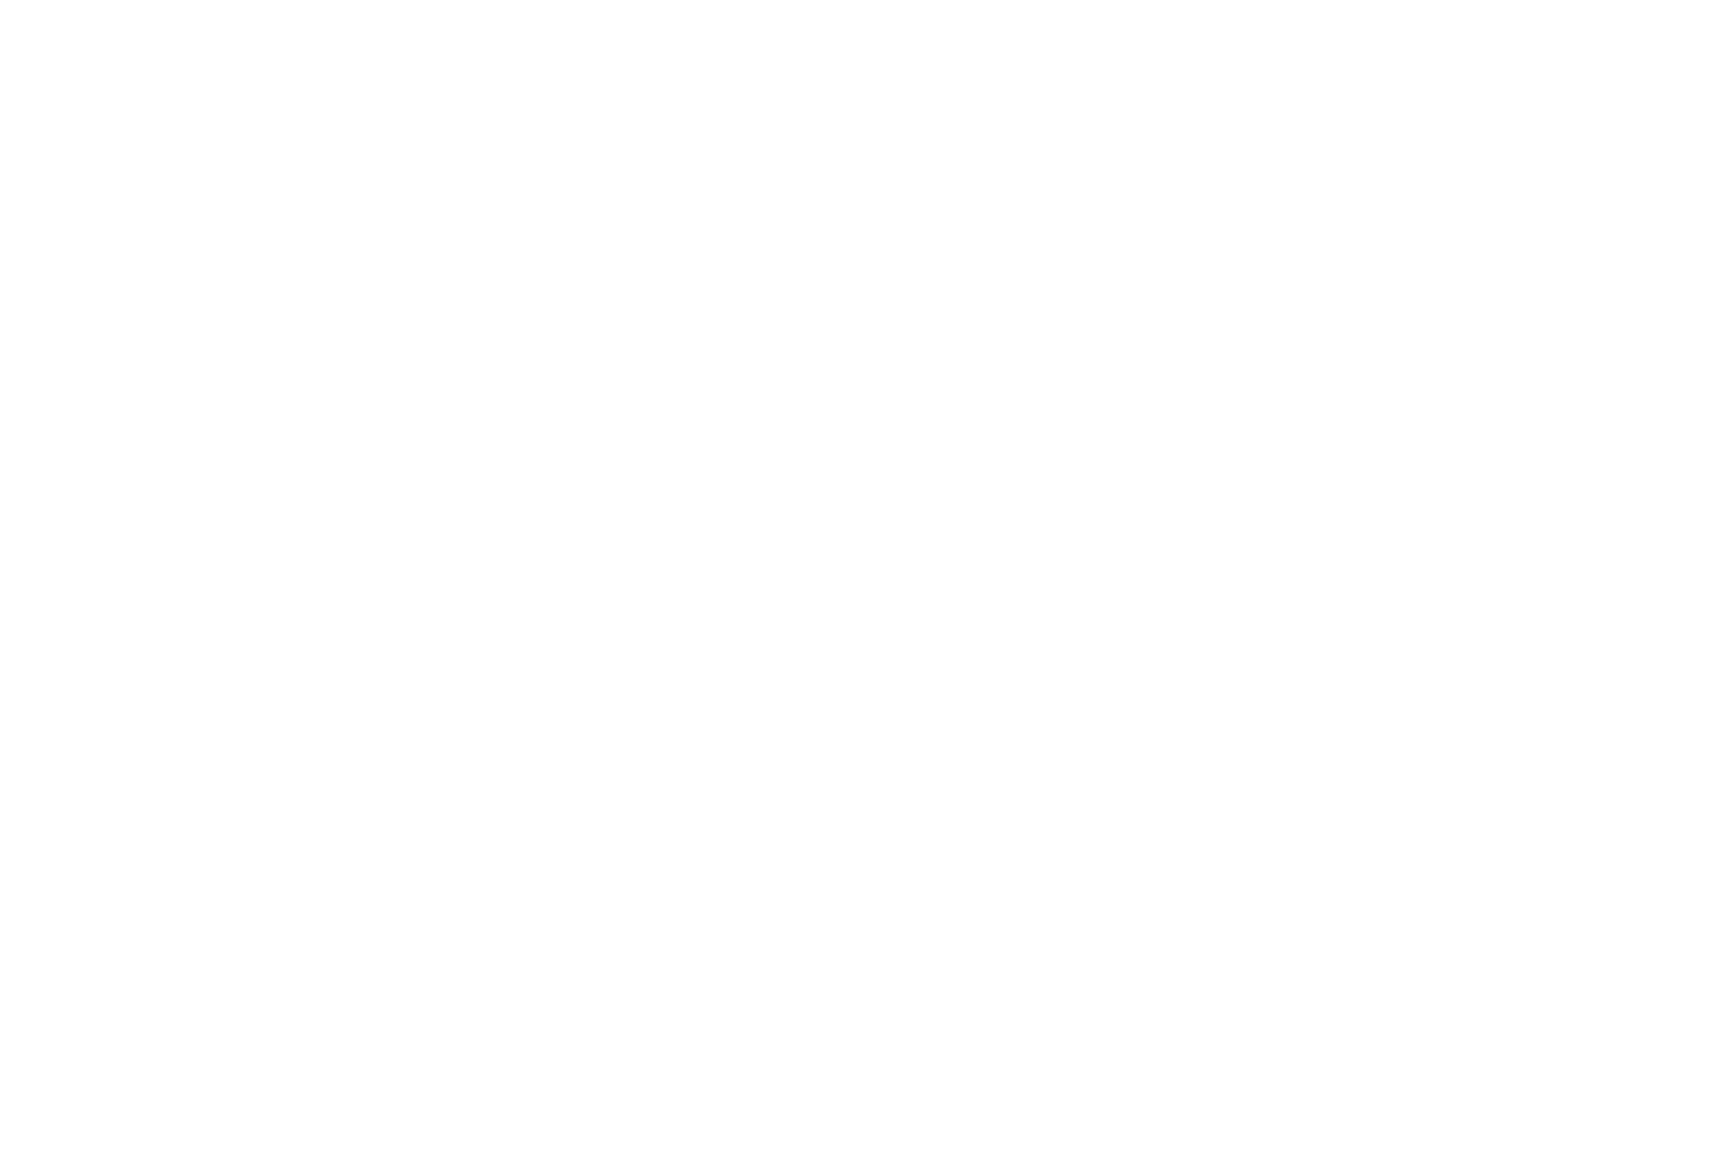 British Documentary Film Festival - BEST SHORT DOCUMENTARY_ NOM.png